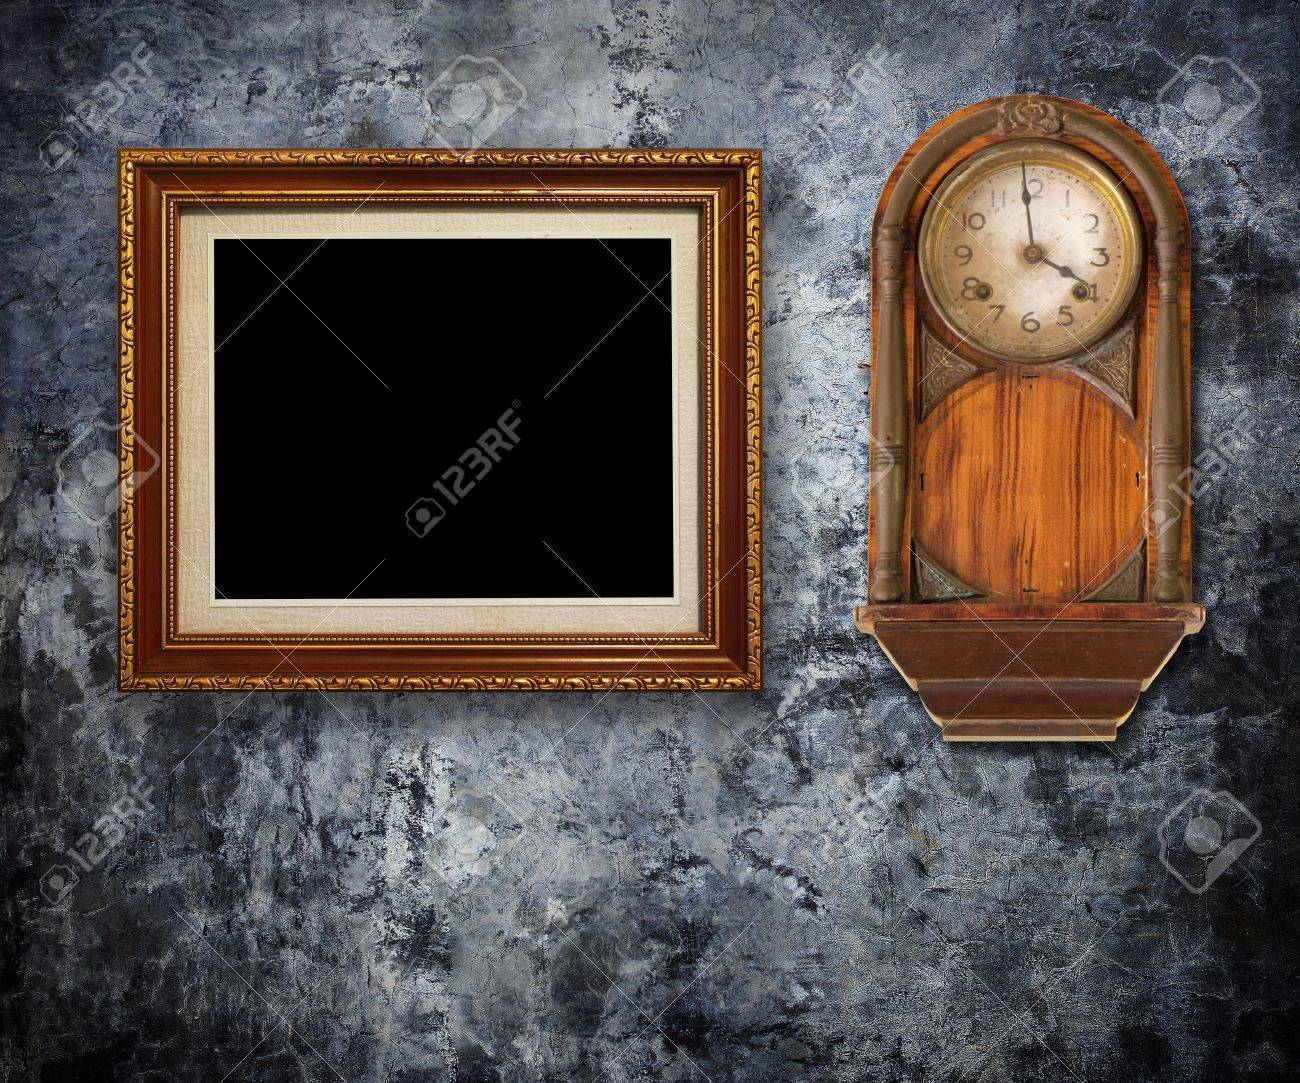 f577ca25d5b Vintage clock with Gold frames on Grungy wall Stock Photo - 15196206